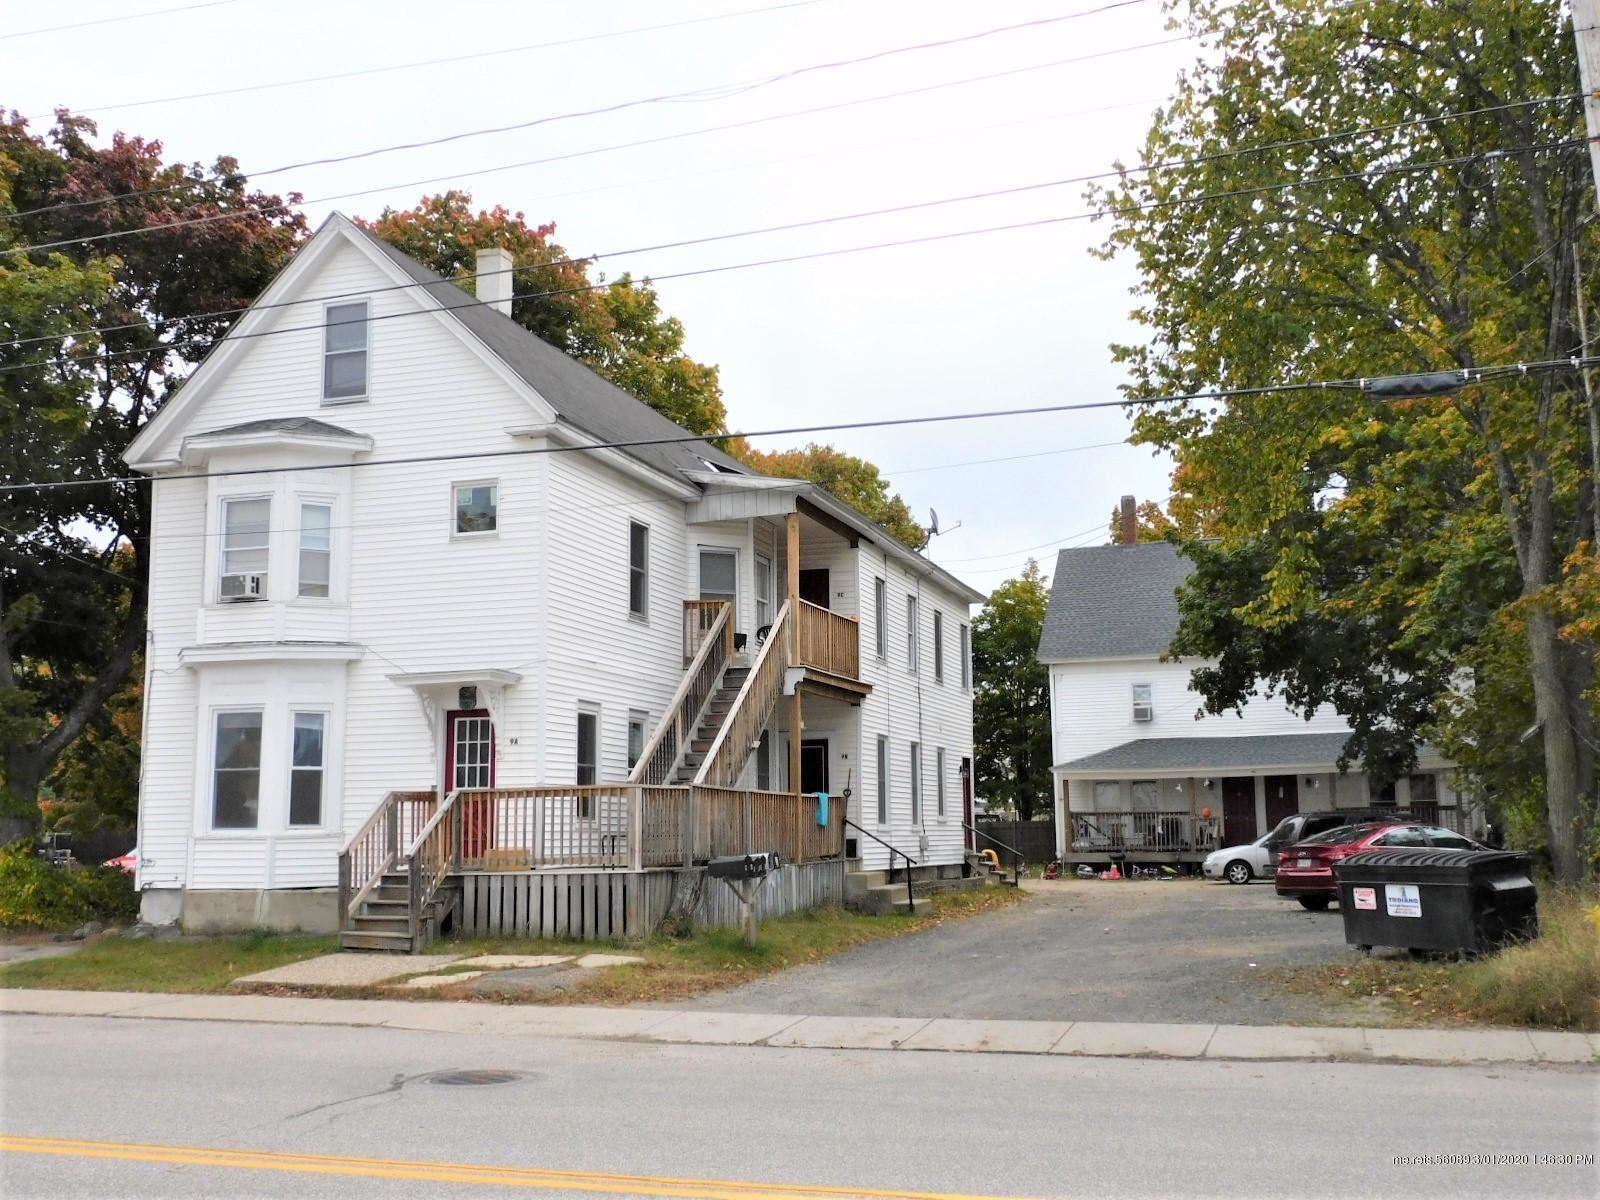 Photo of 9-11 Emery Street, Sanford, ME 04073 (MLS # 1436594)